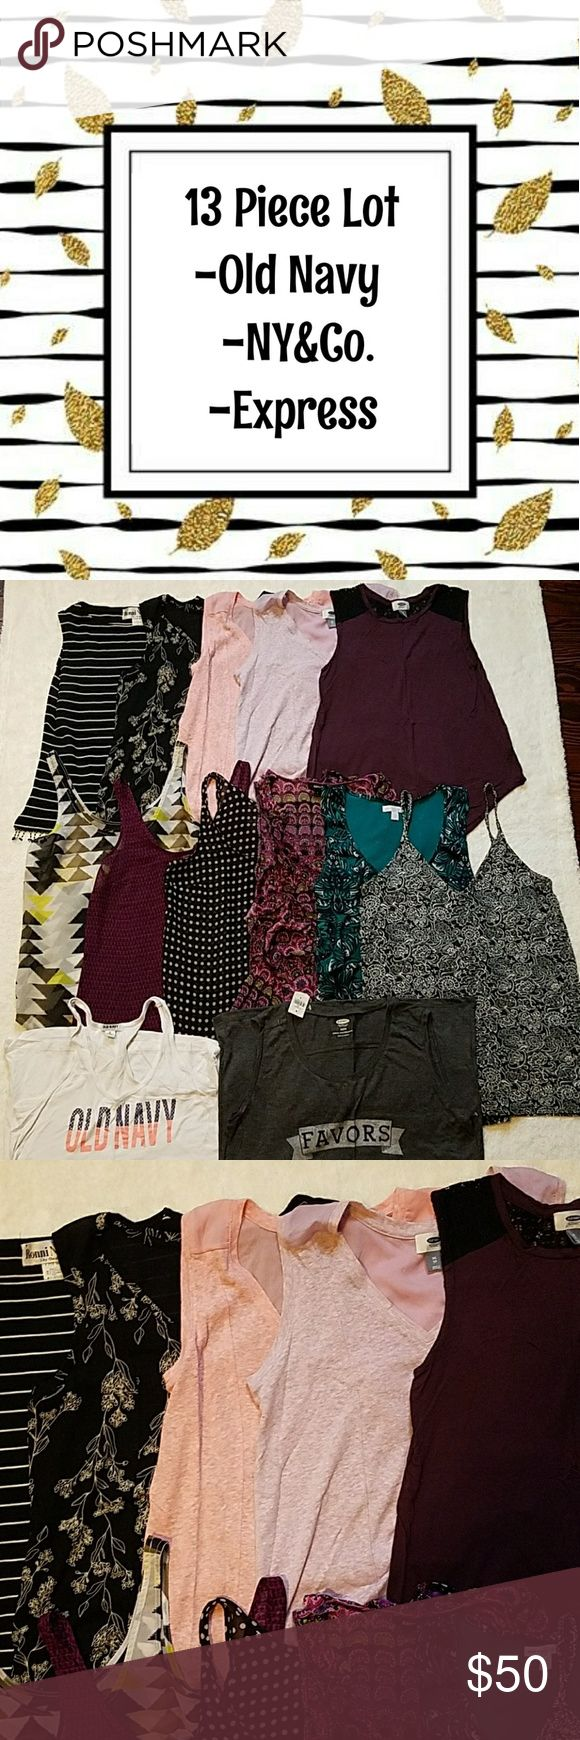 13 Piece Lot 1 Ronni Nicole Tank (S) -no signs of wear  3 Old Navy Sheer Back Tanks (XS) -no signs of wear  1 Old Navy Lace Panel Tank (XS) - minor pilling  2 Old Navy Sheer Shell Tanks (XS) -no signs of wear  1 Old Navy Sheer Shell Tank (S) -no signs of wear  1 Express Tiered Tank (S) -no signs of wear  1 New York and Company Tank (S) -no signs of wear  1 Old Navy Strappy V Neck Tank (XS) -no signs of wear  2 Old Navy Americana Tanks (XS) -white Has some pilling -grey is NWT   Measurements…